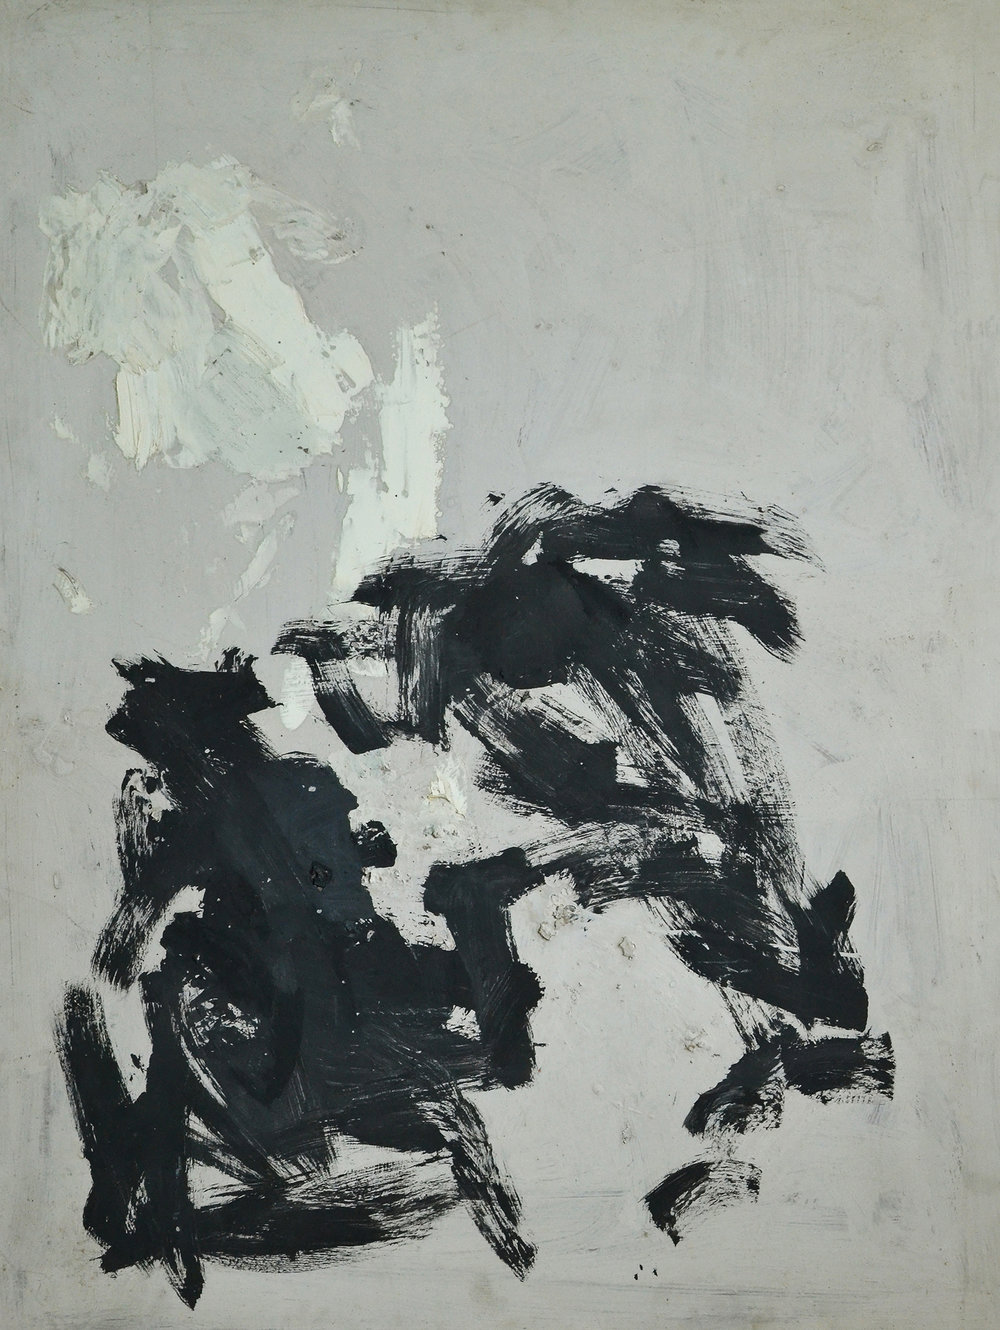 Landscape , 1968. Oil on hardboard (masonite), 48 x 36 in. (122 x 91.4 cm.)